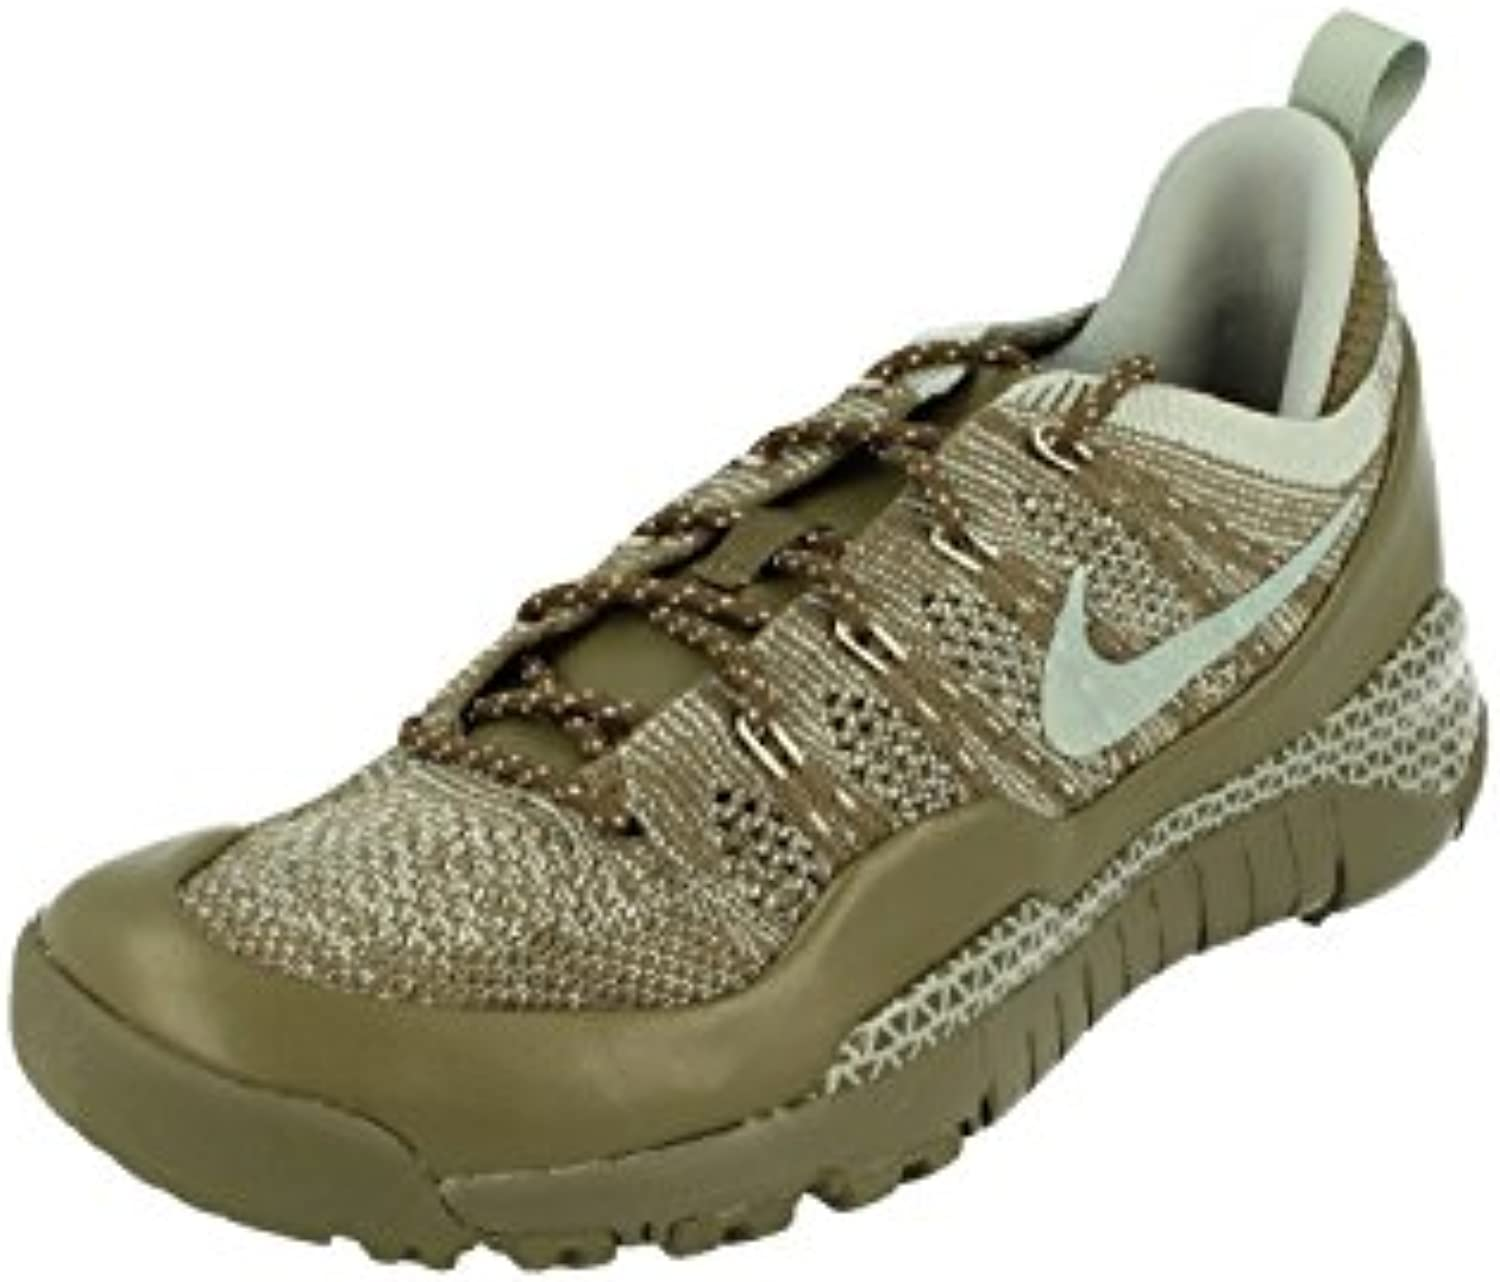 nike nike nike lupinek flyknit faible   en formateurs 882685 chaussures chaussures (uk 6 us 6.5 ue 39, mica carho kaki vert... d0e3d4